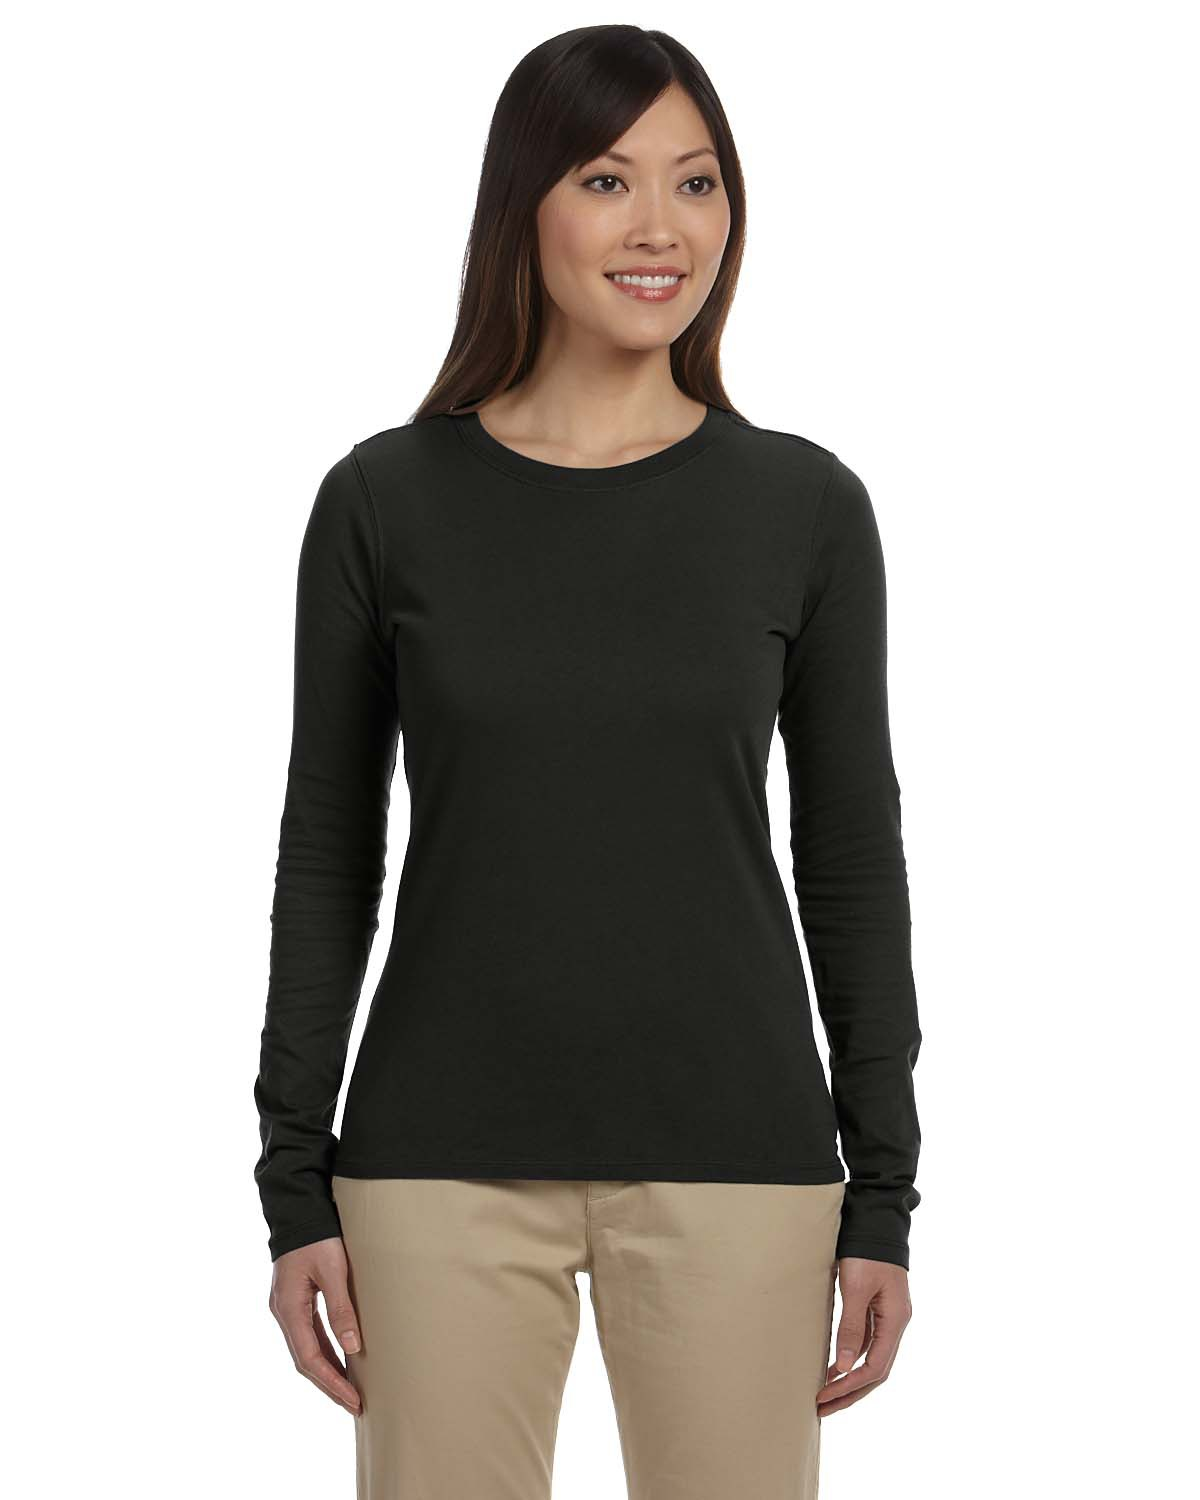 Long Sleeve Shirts: Free Shipping on orders over $45 at distrib-wq9rfuqq.tk - Your Online Tops Store! Overstock uses cookies to ensure you get the best experience on our site. If you continue on our site, you consent to the use of such cookies. T Flex Womens Comfort Long Sleeve T-Shirt Underscrub Tee Layering Shirt Uniform.